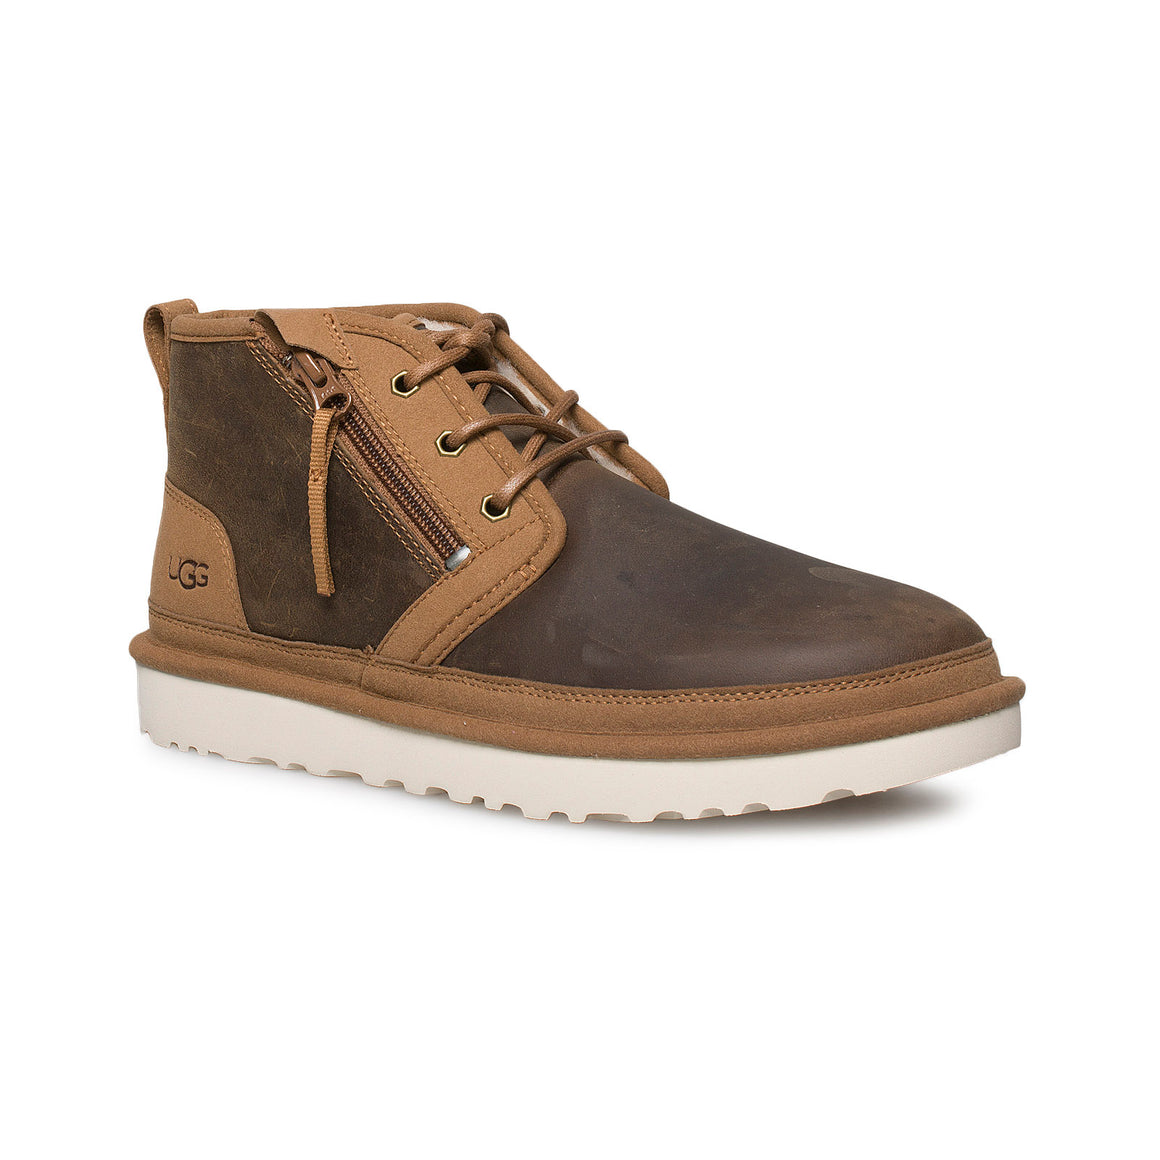 UGG Neumel Zip Chestnut Boots - Men's